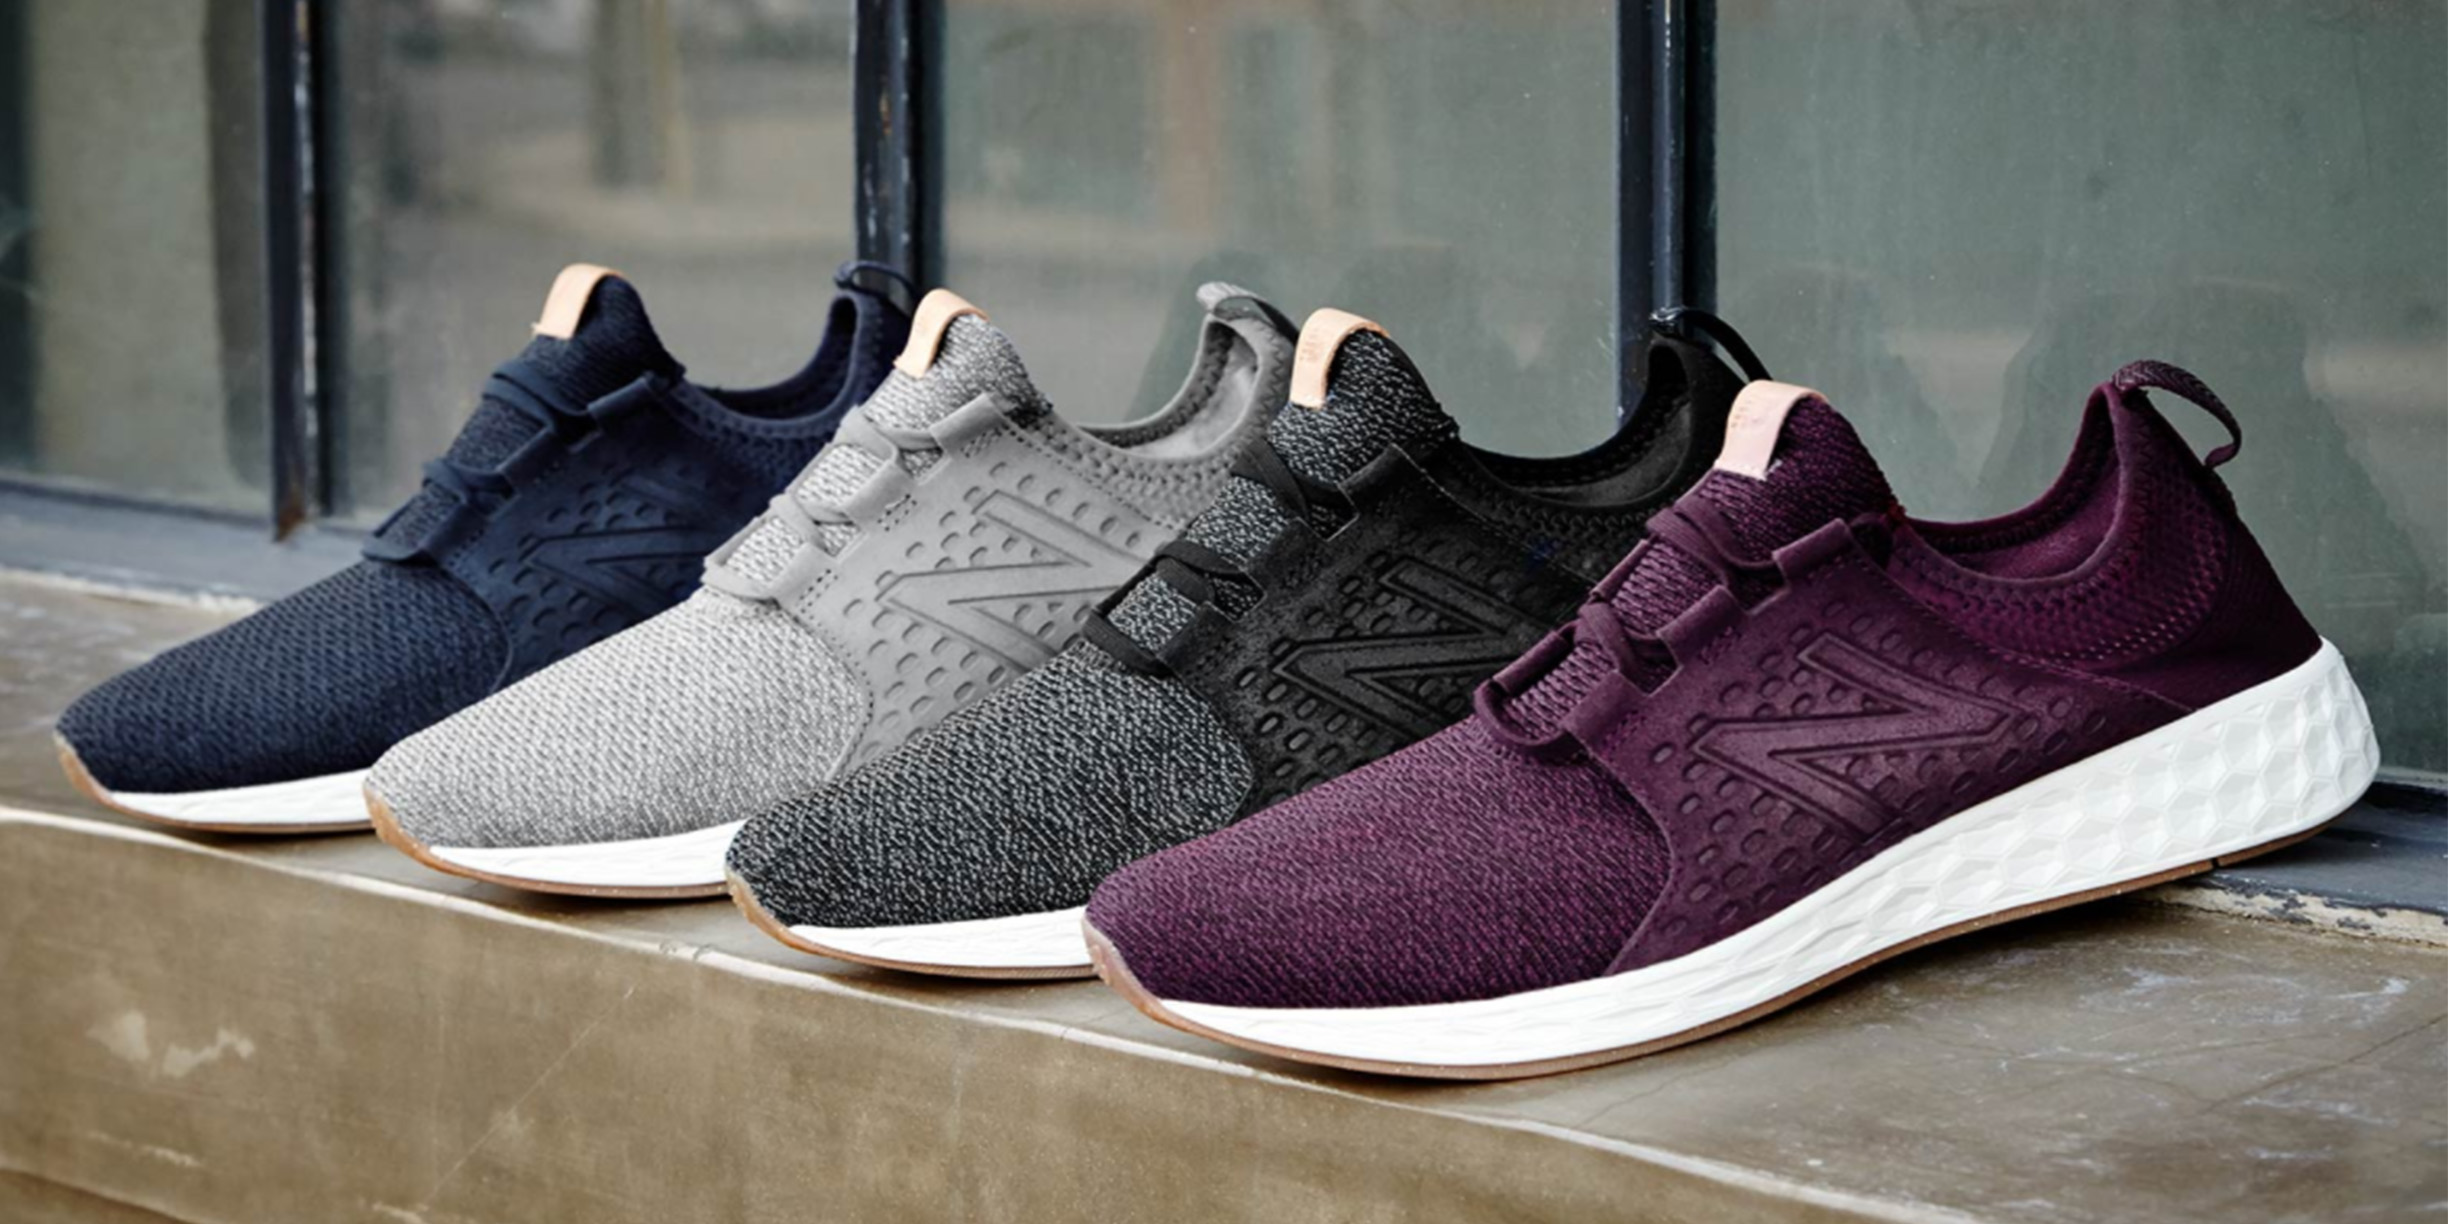 New Balance takes 10% off sitewide +